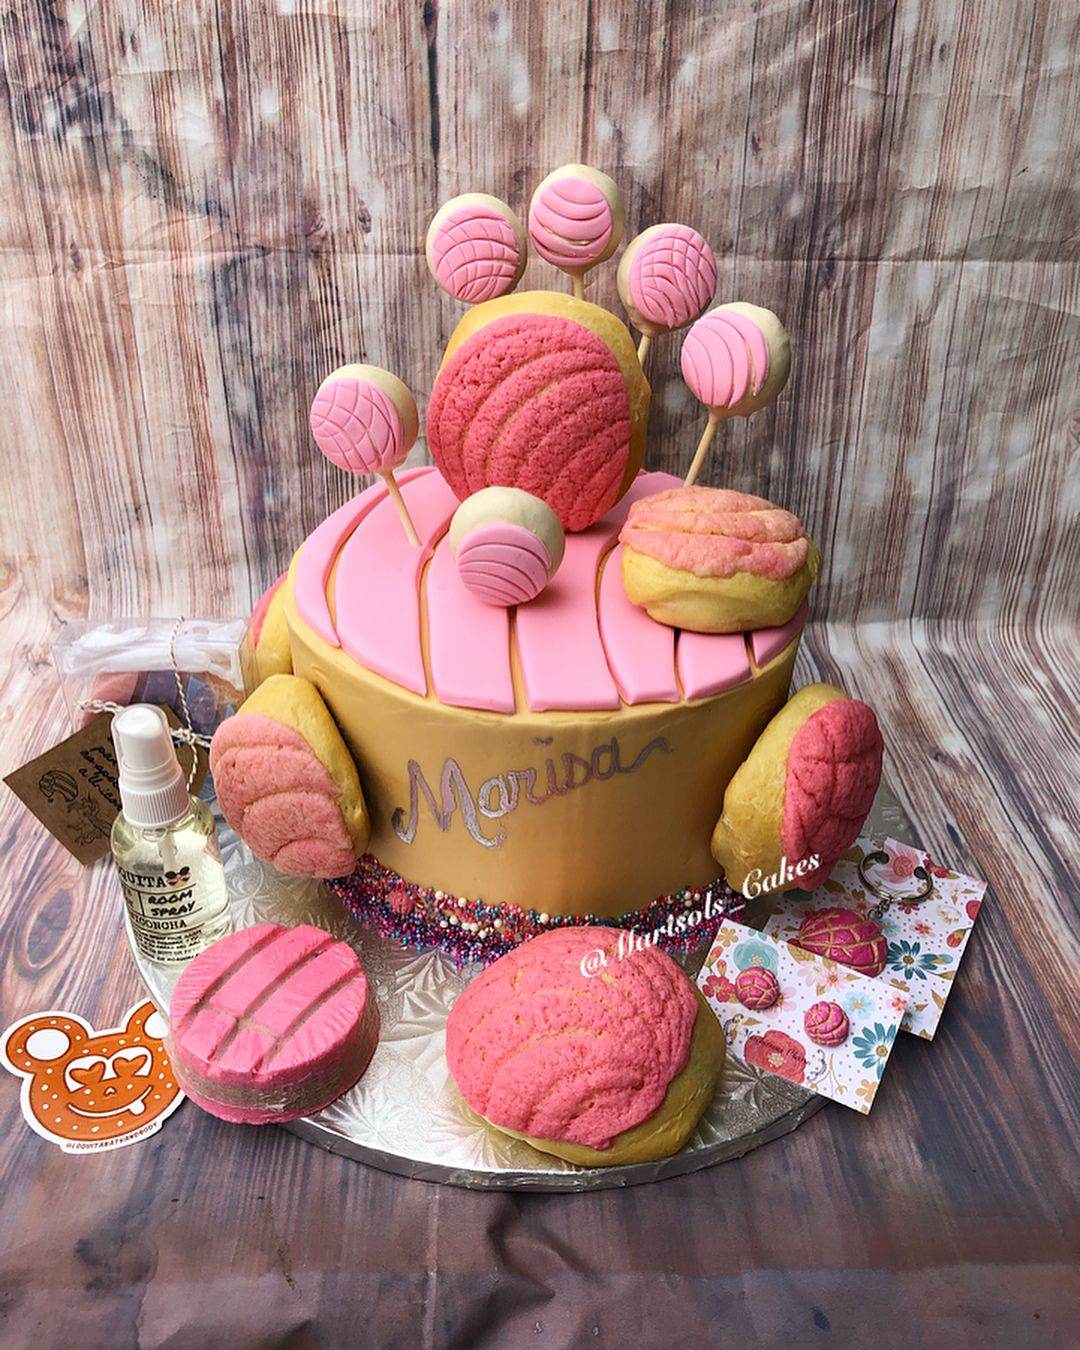 Concha Cake With Conchas And Pops Pan Dulce ConchaCake ConchaCakePops